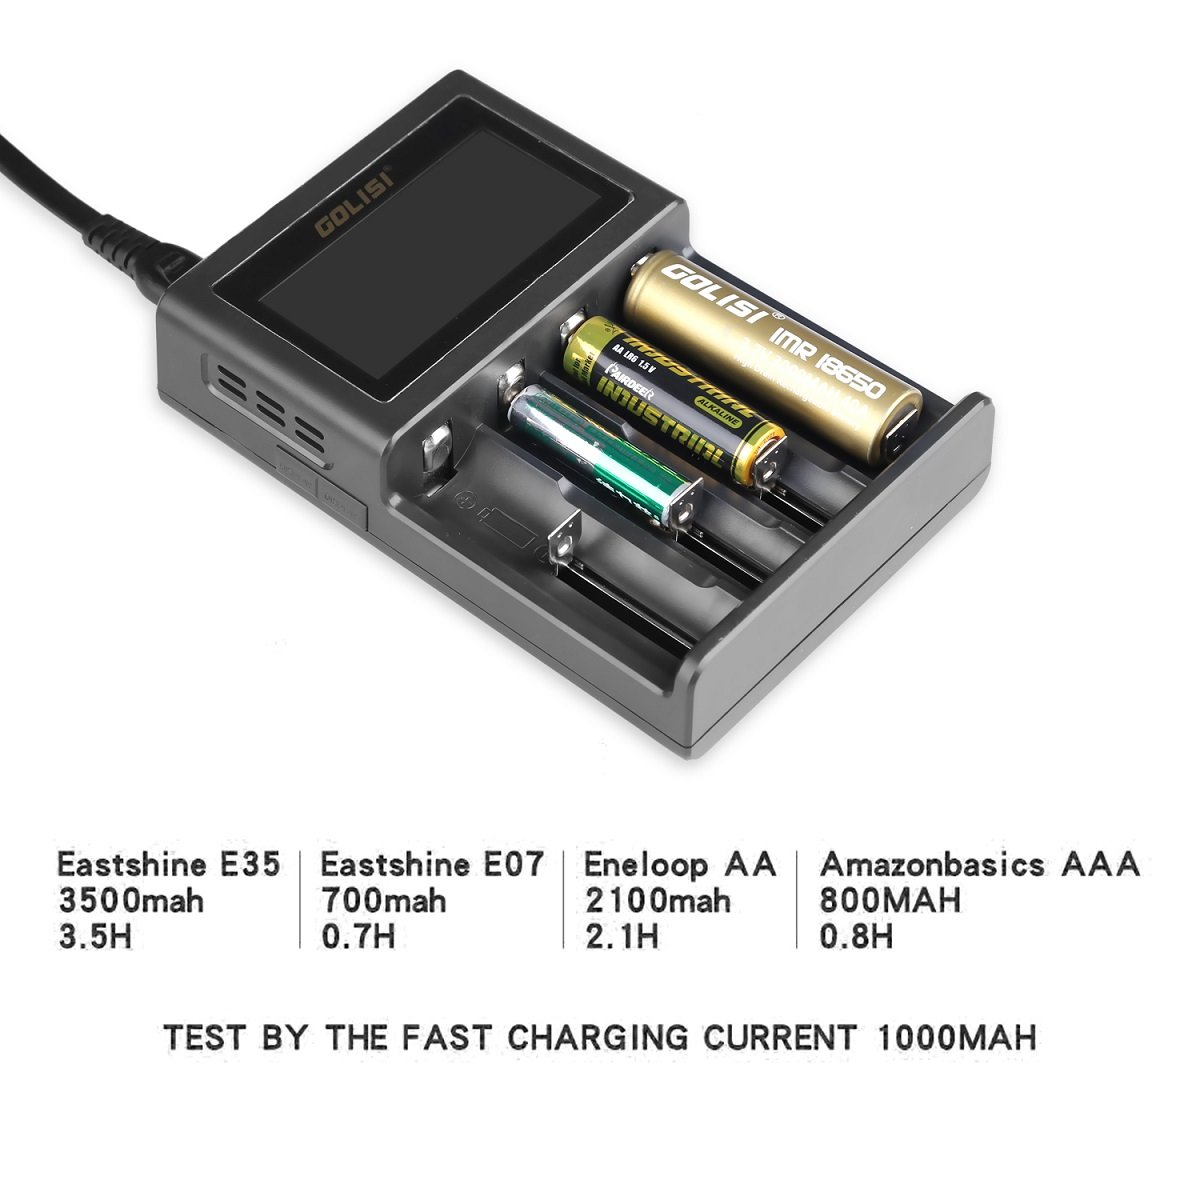 18650 / 26650 Battery Charger, Golisi Universal Charger with 4 Bay, 12V 2A Quick Charge, LCD Display, Good for Ni-MH Ni-Cd AA AAA Li-ion LiFePO4 IMR 10440 14500 16340 RCR123, Best 4 slot Charger for E-cig / Vape Batteries